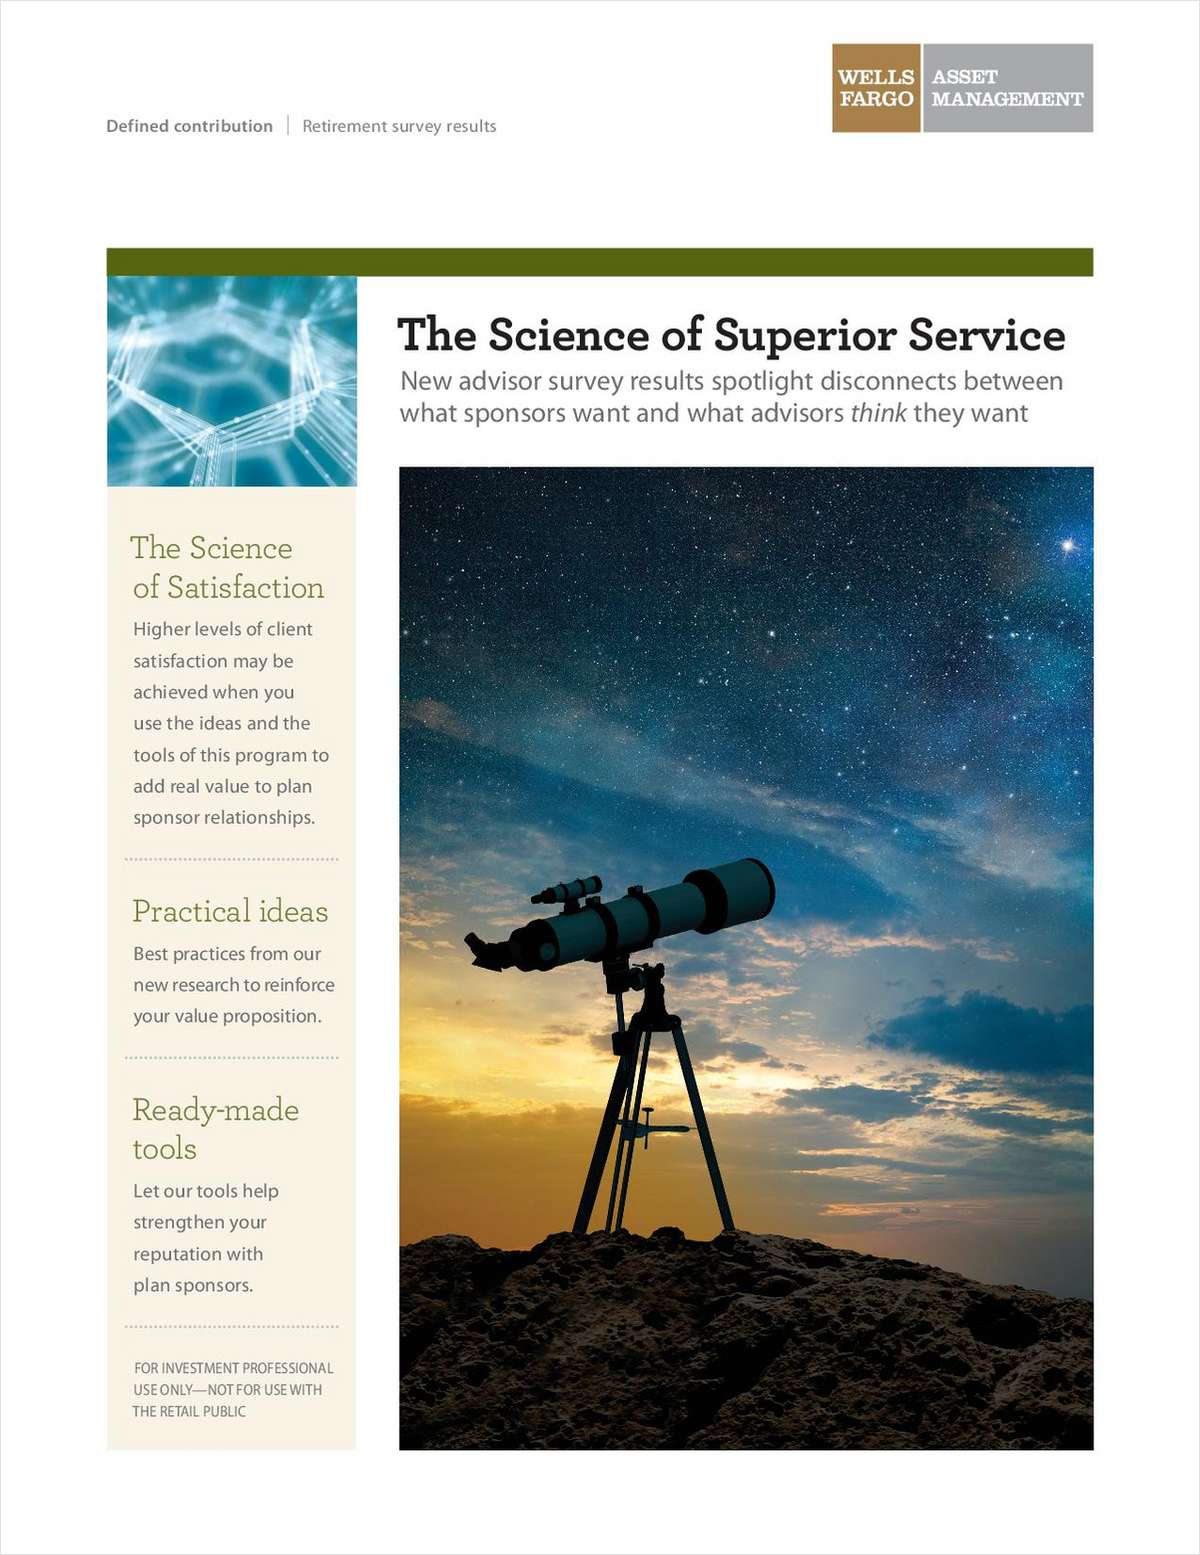 The Science of Superior Service: Full Report